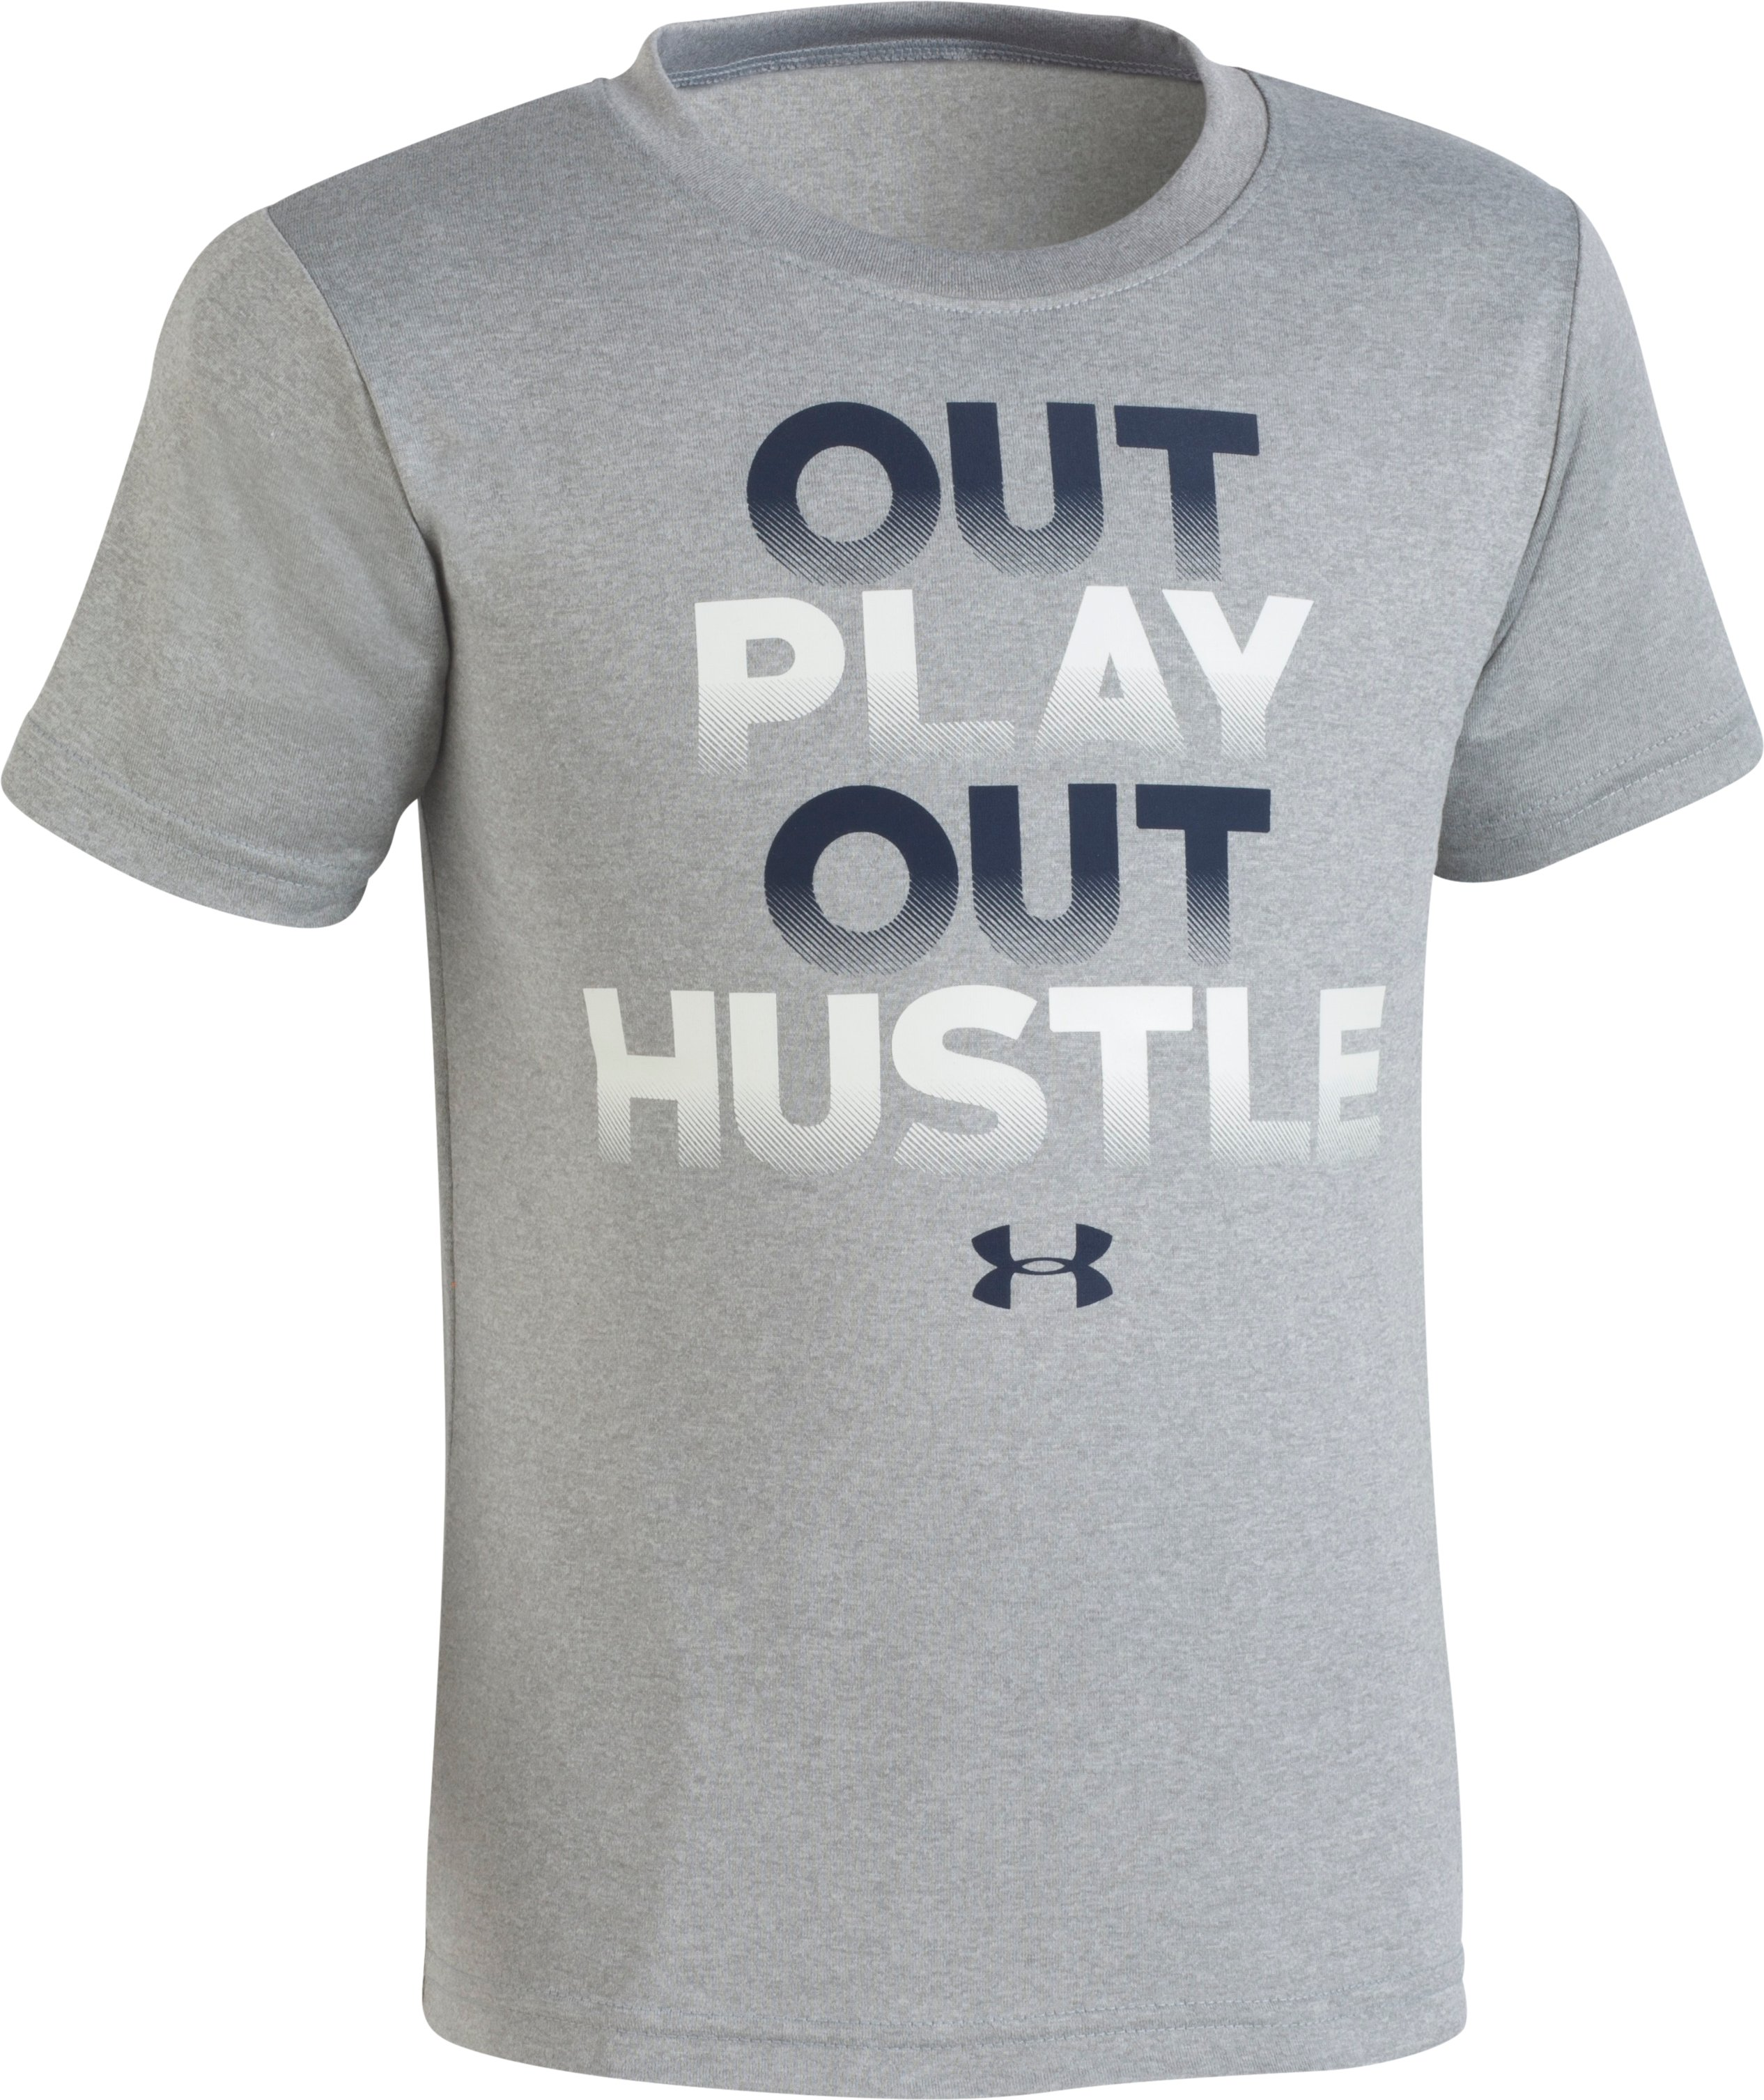 Boys' Toddler UA Out Play Out Hustle T-Shirt , STEEL MEDIUM HEATHER, Laydown